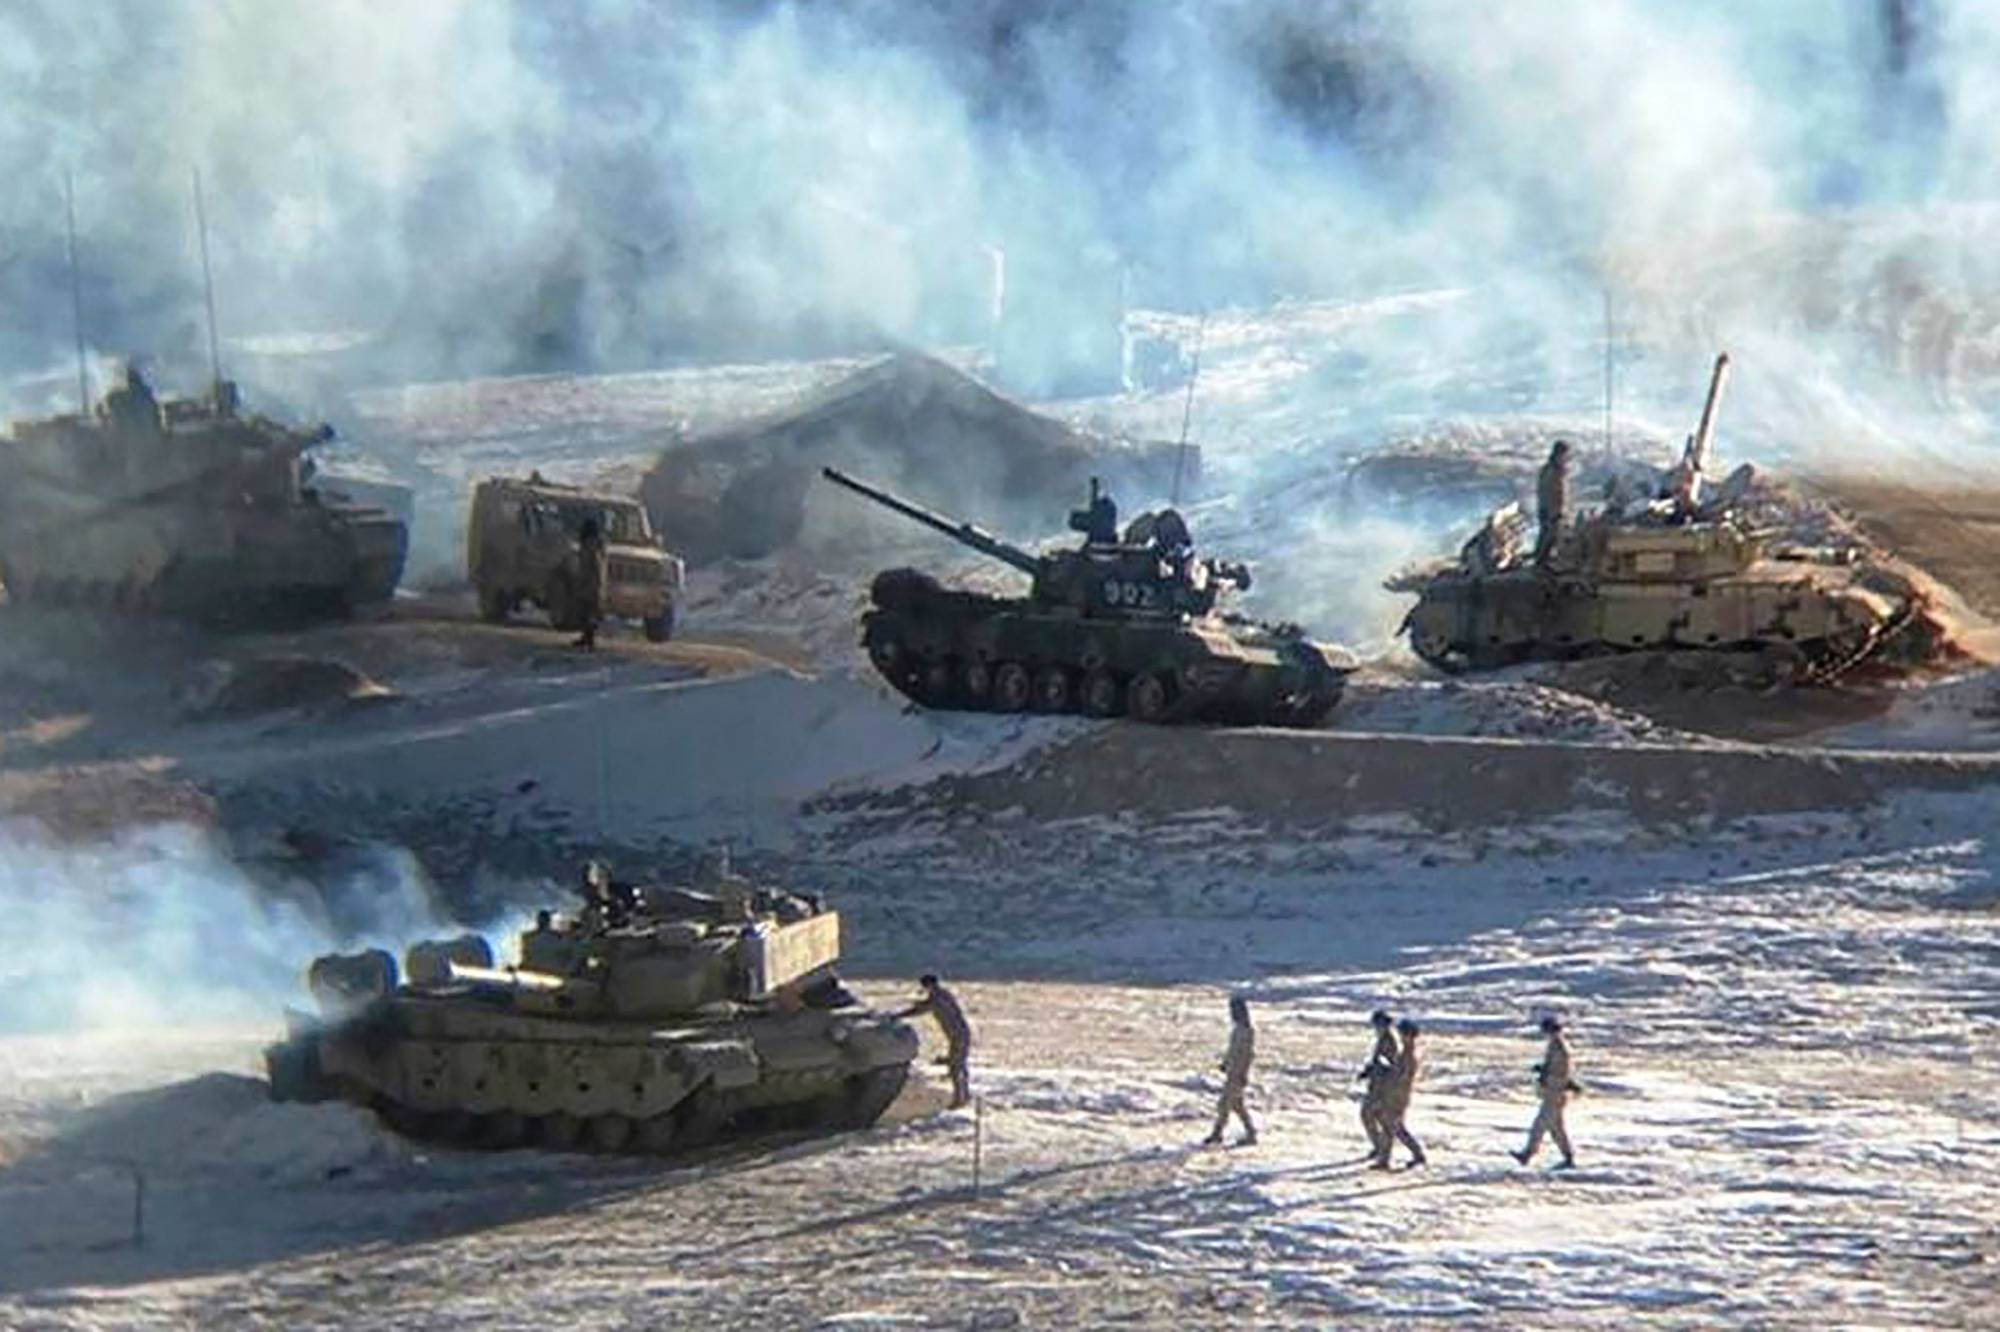 Chinese People Liberation Army soldiers and tanks are seen along the Line of Actual Control at the India-China border in Ladakh, India, in this undated photograph released on Feb. 16. | INDIAN MINISTRY OF DEFENSE / VIA REUTERS